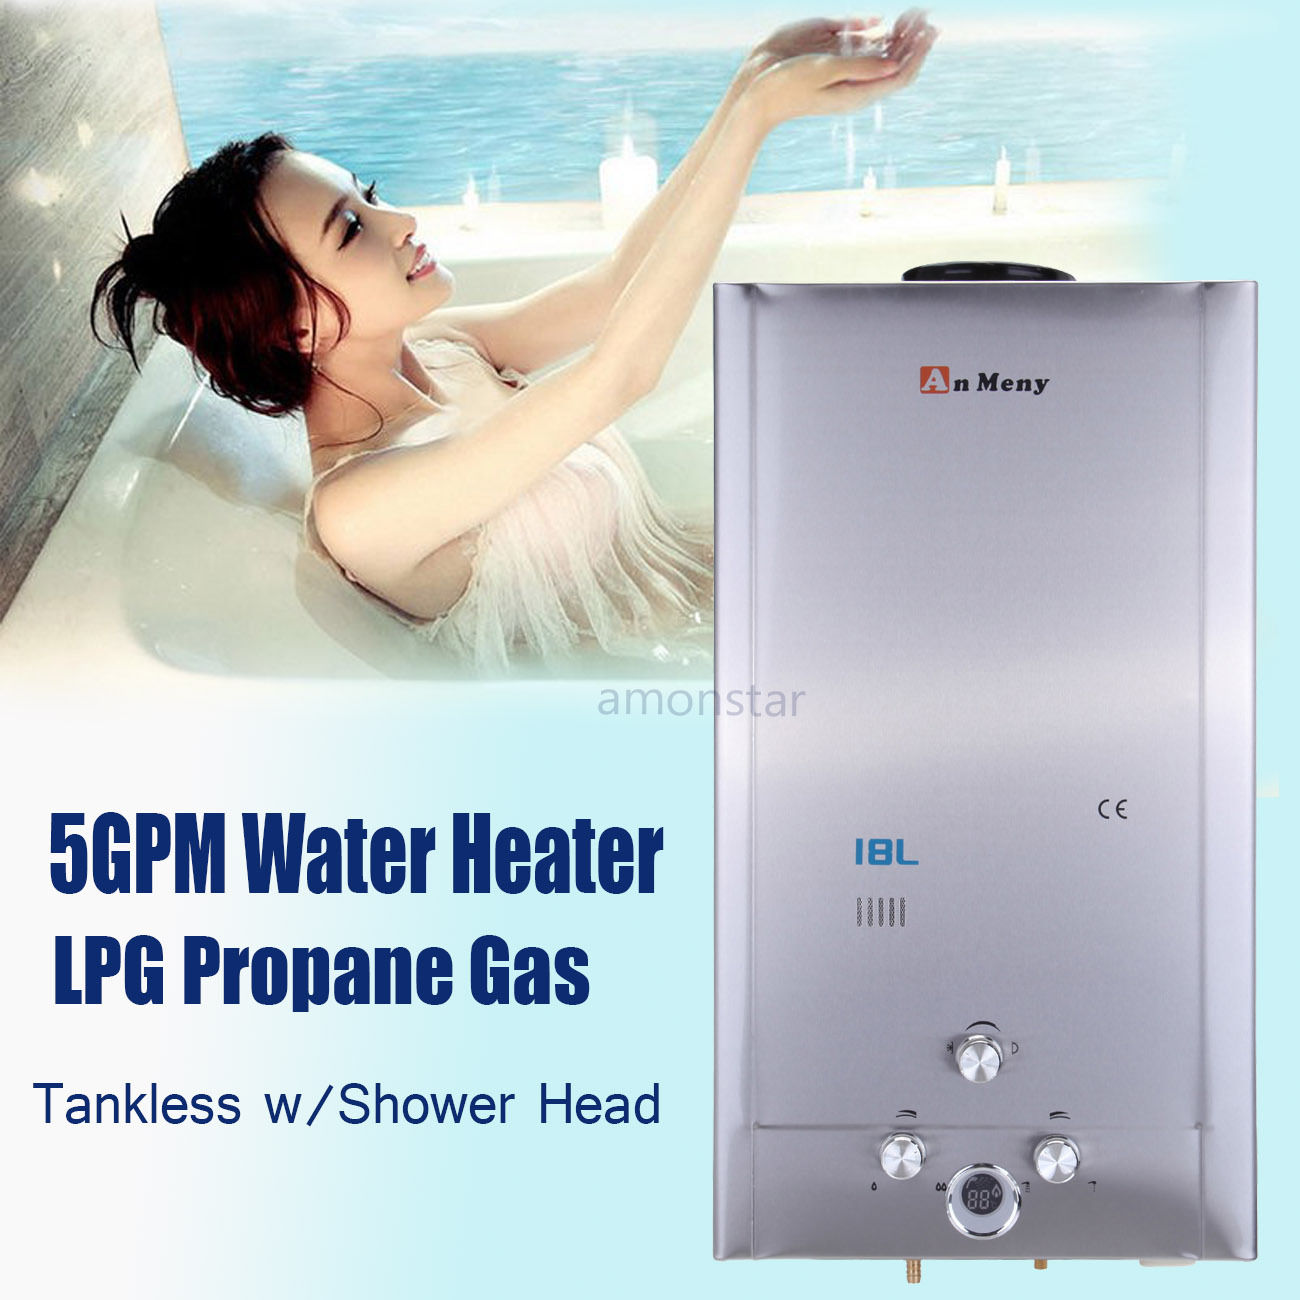 FAST SHIPPING 18L Tankless LPG Propane Gas Hot Water Heater 5GPM Digital Display W/Shower Head